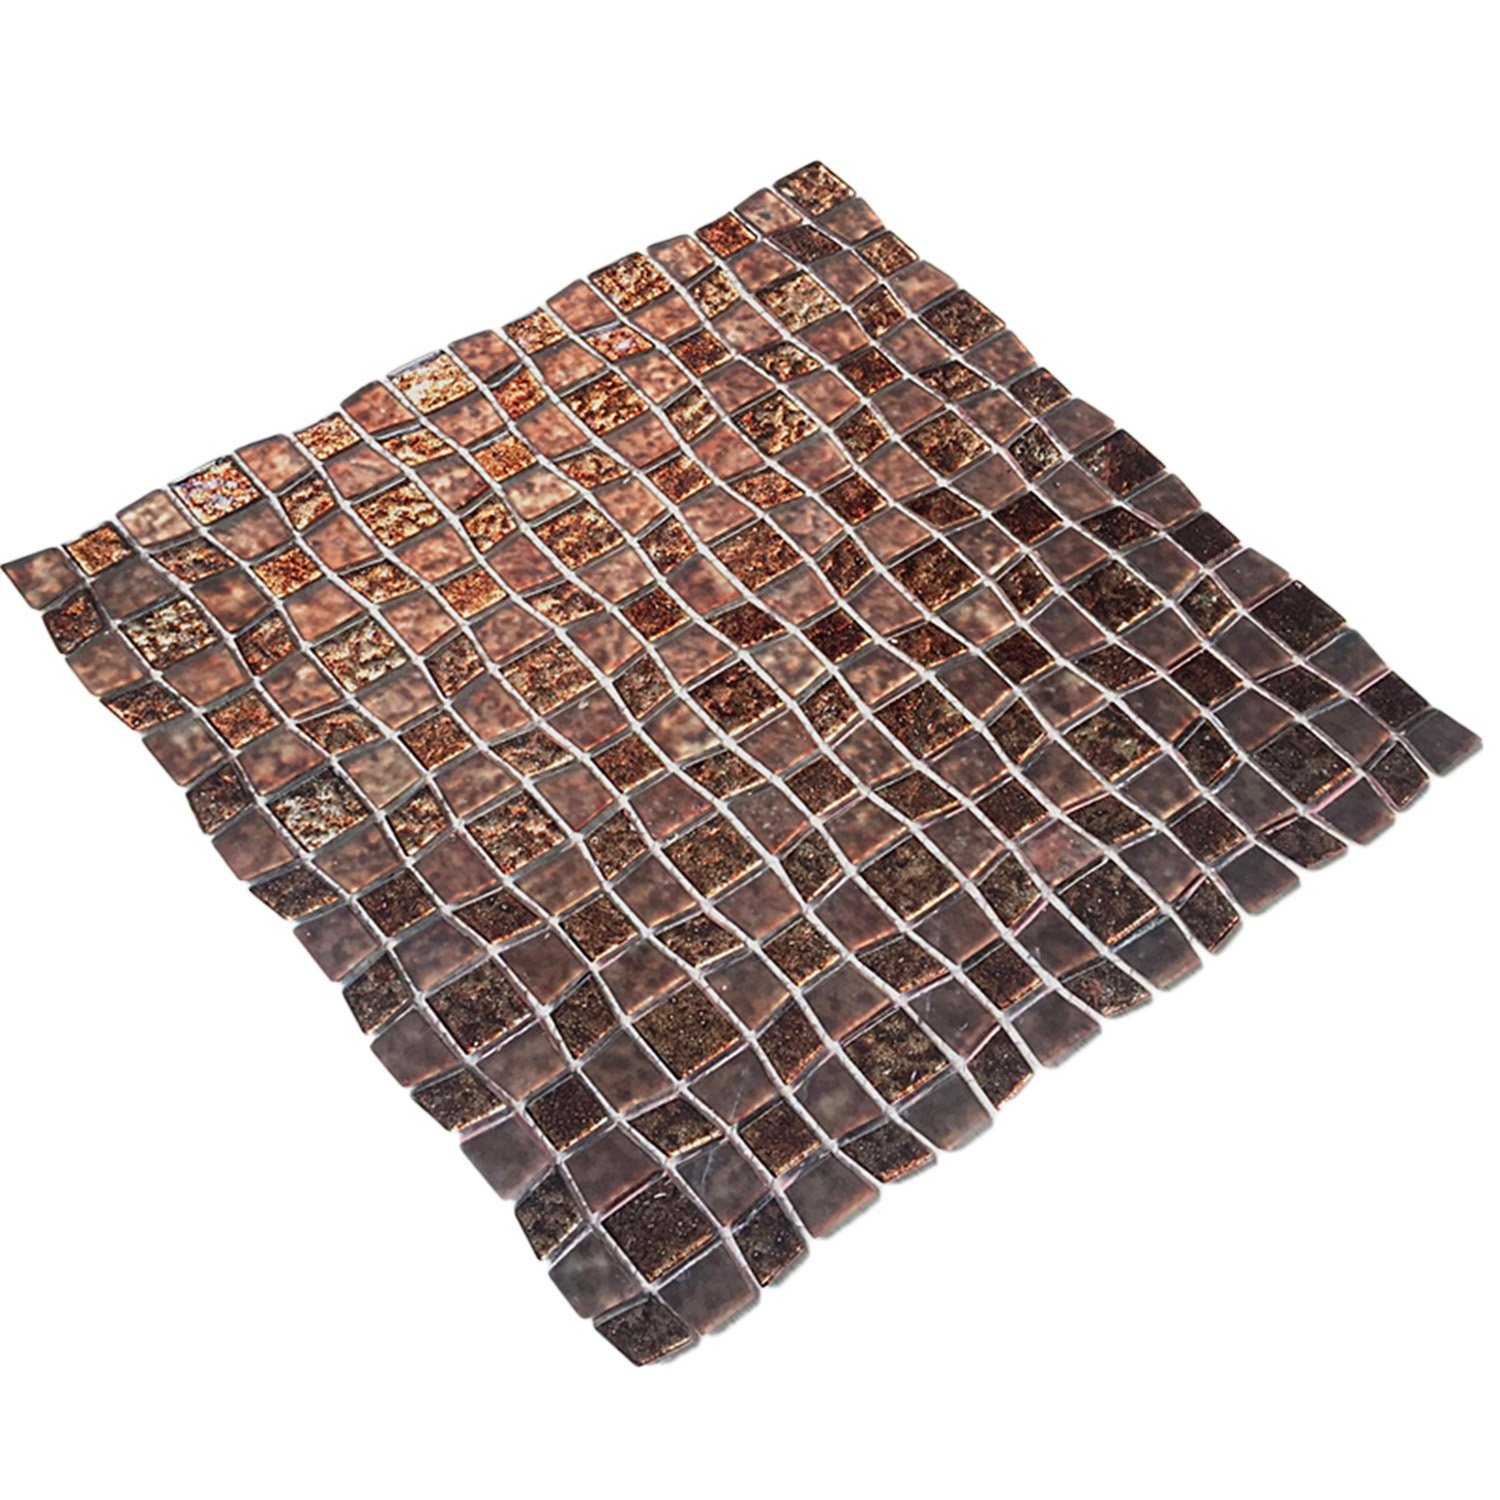 EKBInnovations Instant Mosaic Peel and Stick 11.5-inch Glass Mosaic Wall Tile (6 sheets) 6 Piece